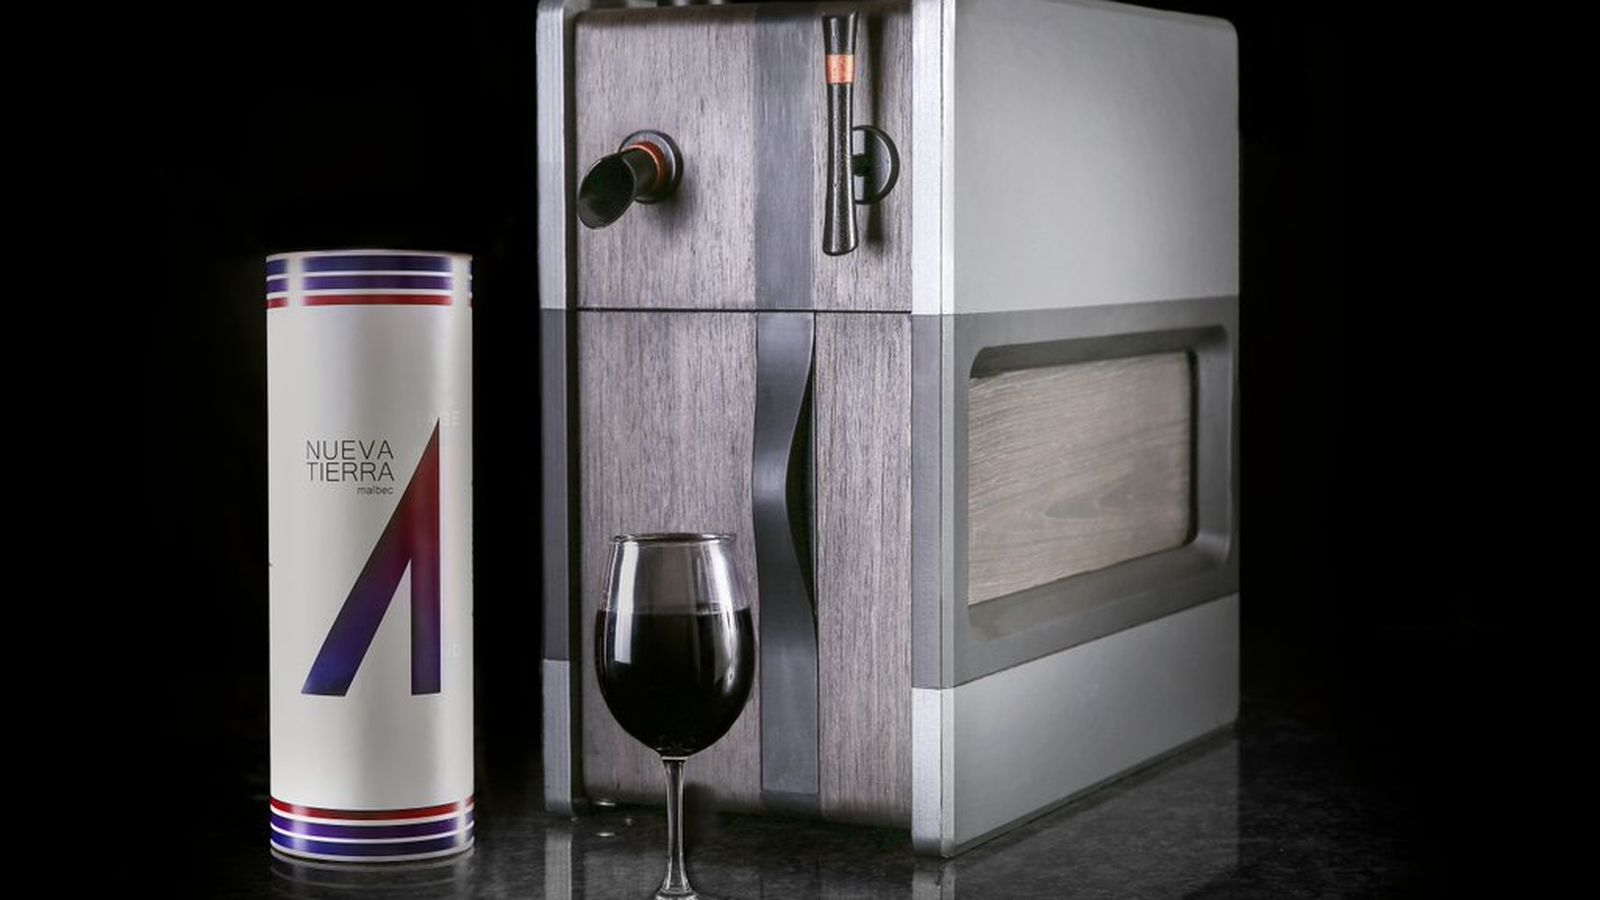 Wine Dispenser Kickstarter Raises $100,000 in Just 15 Hours photo